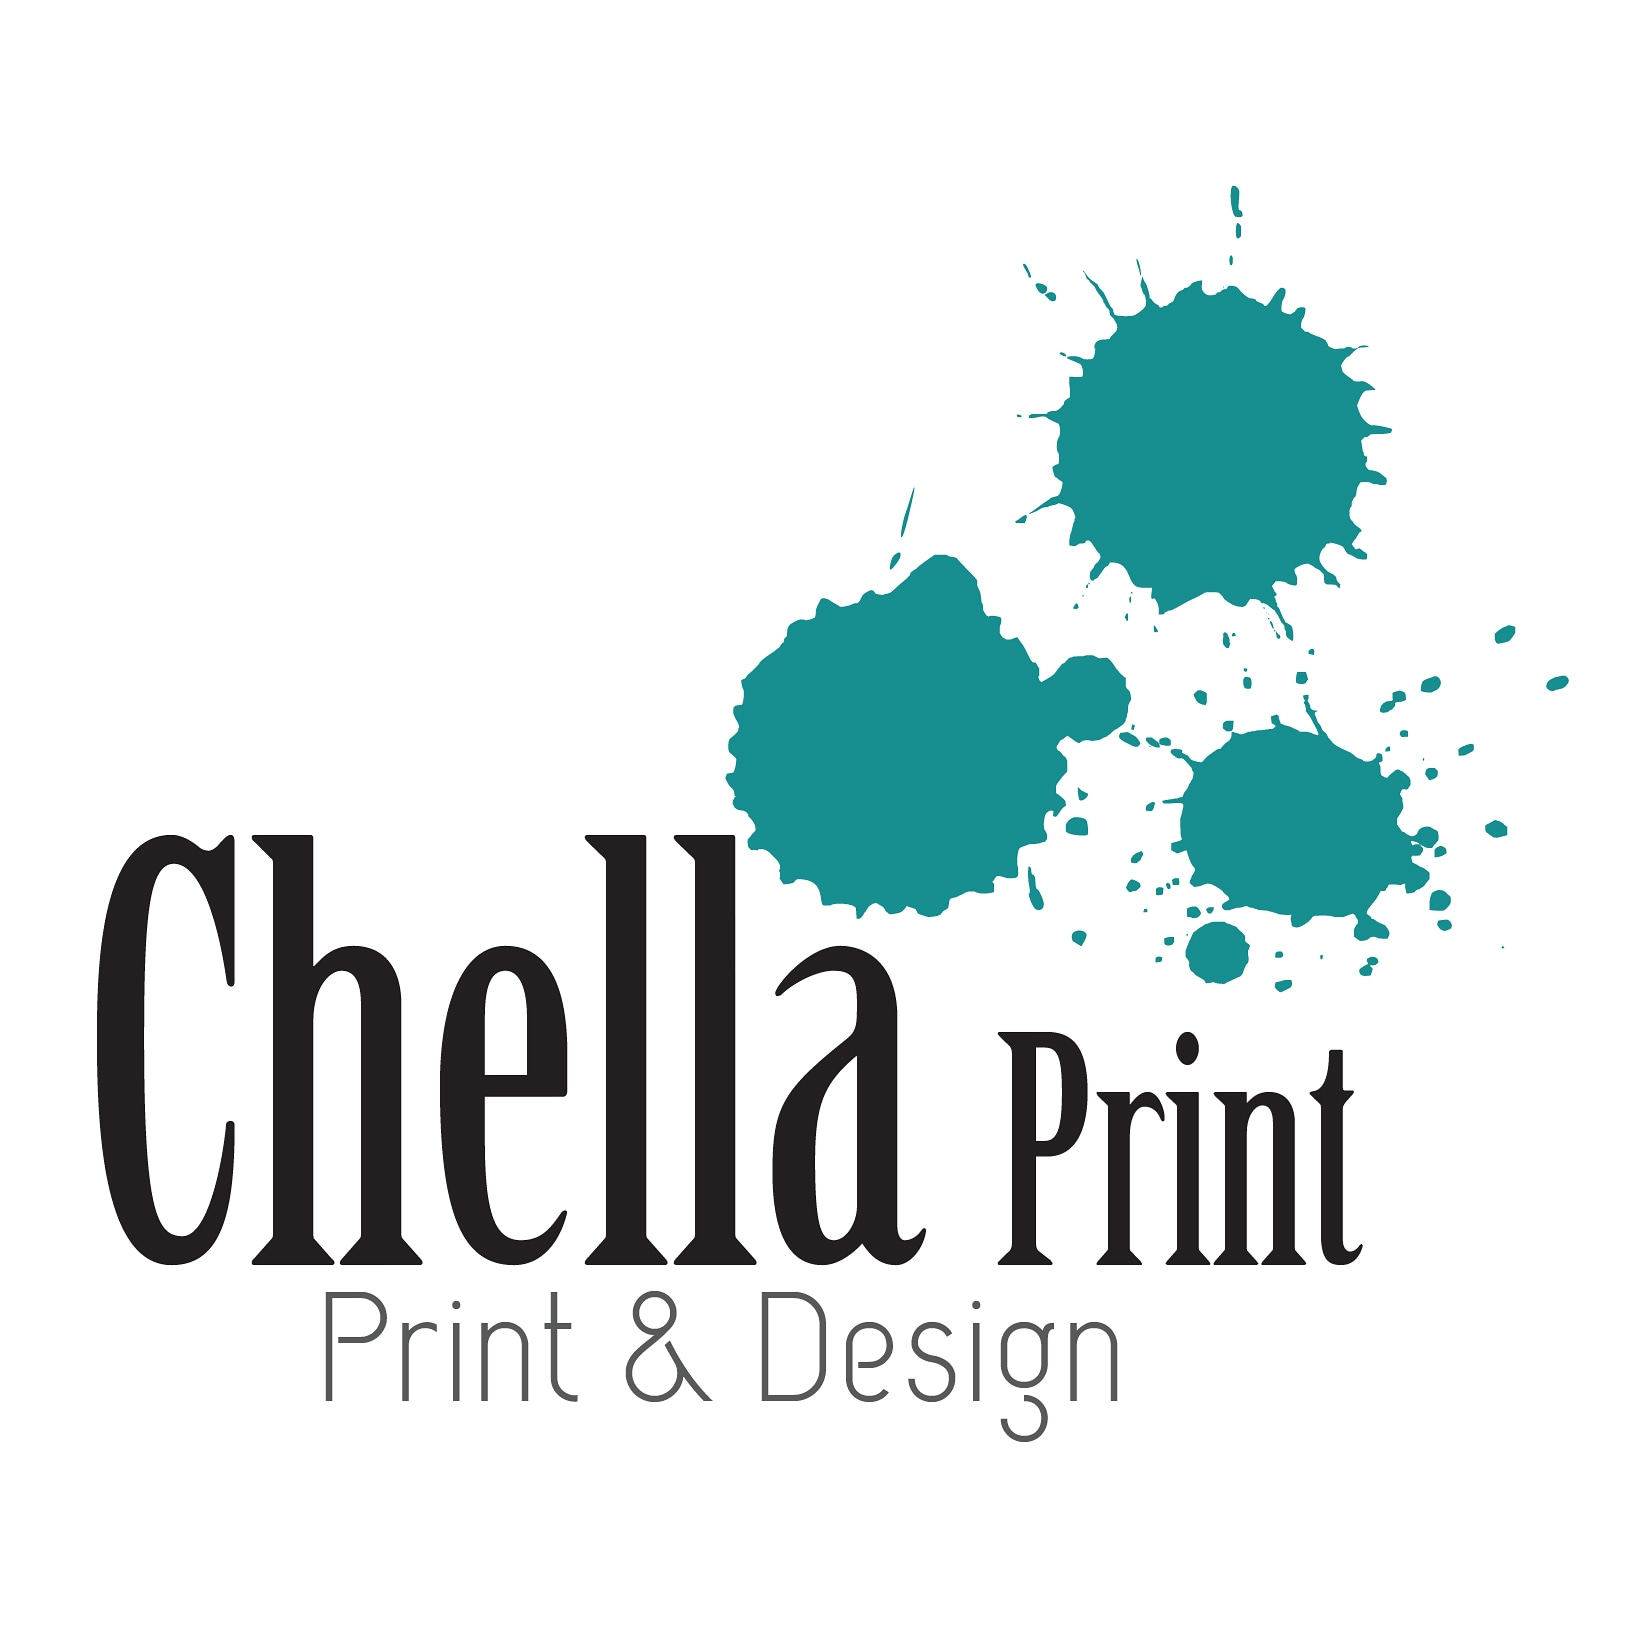 www.chellaprint.co.uk